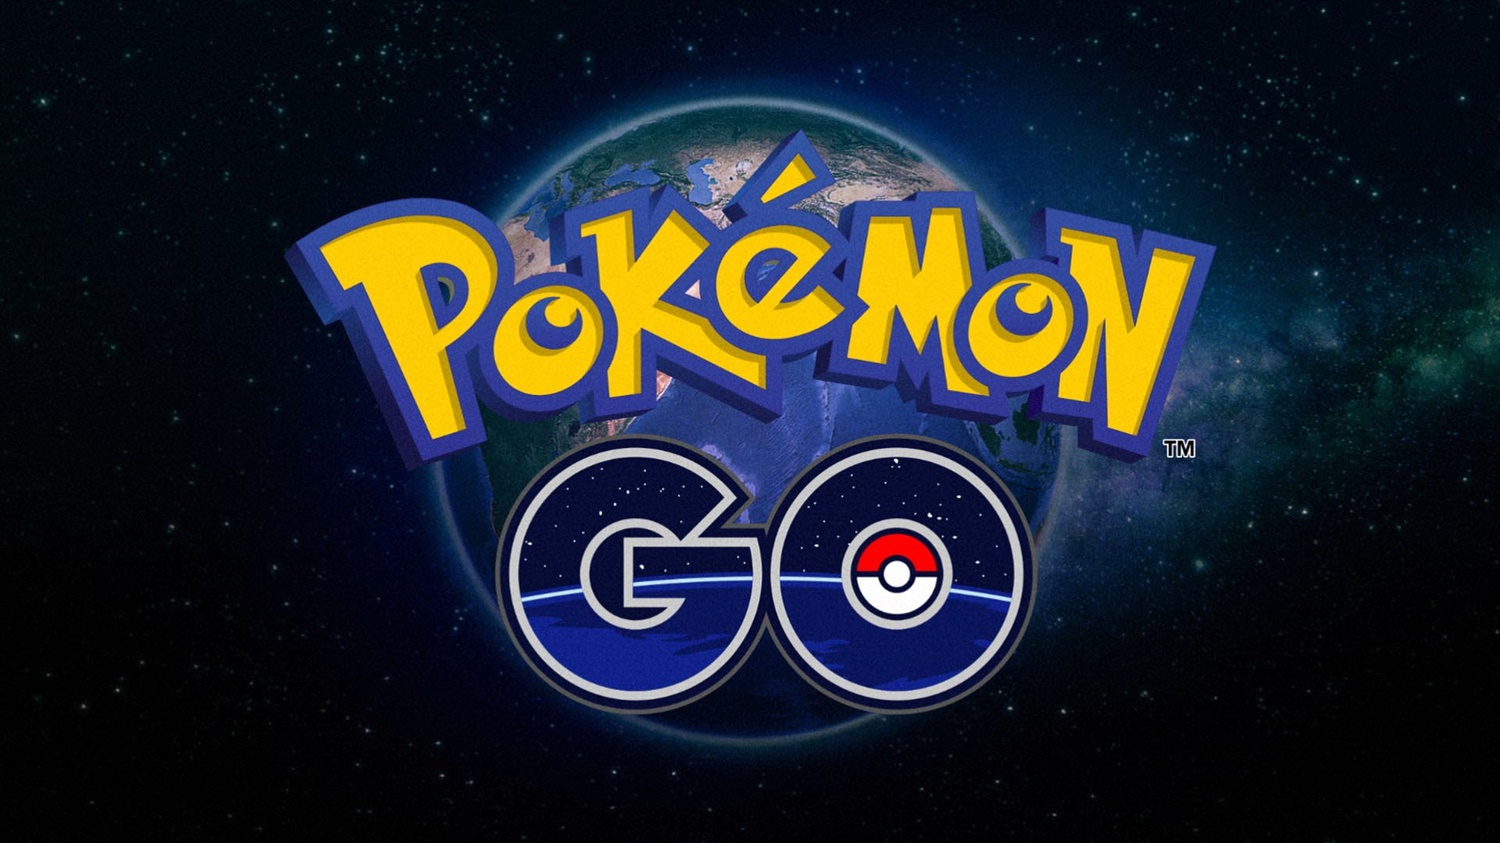 What can Pokémon Go do for your council and community?